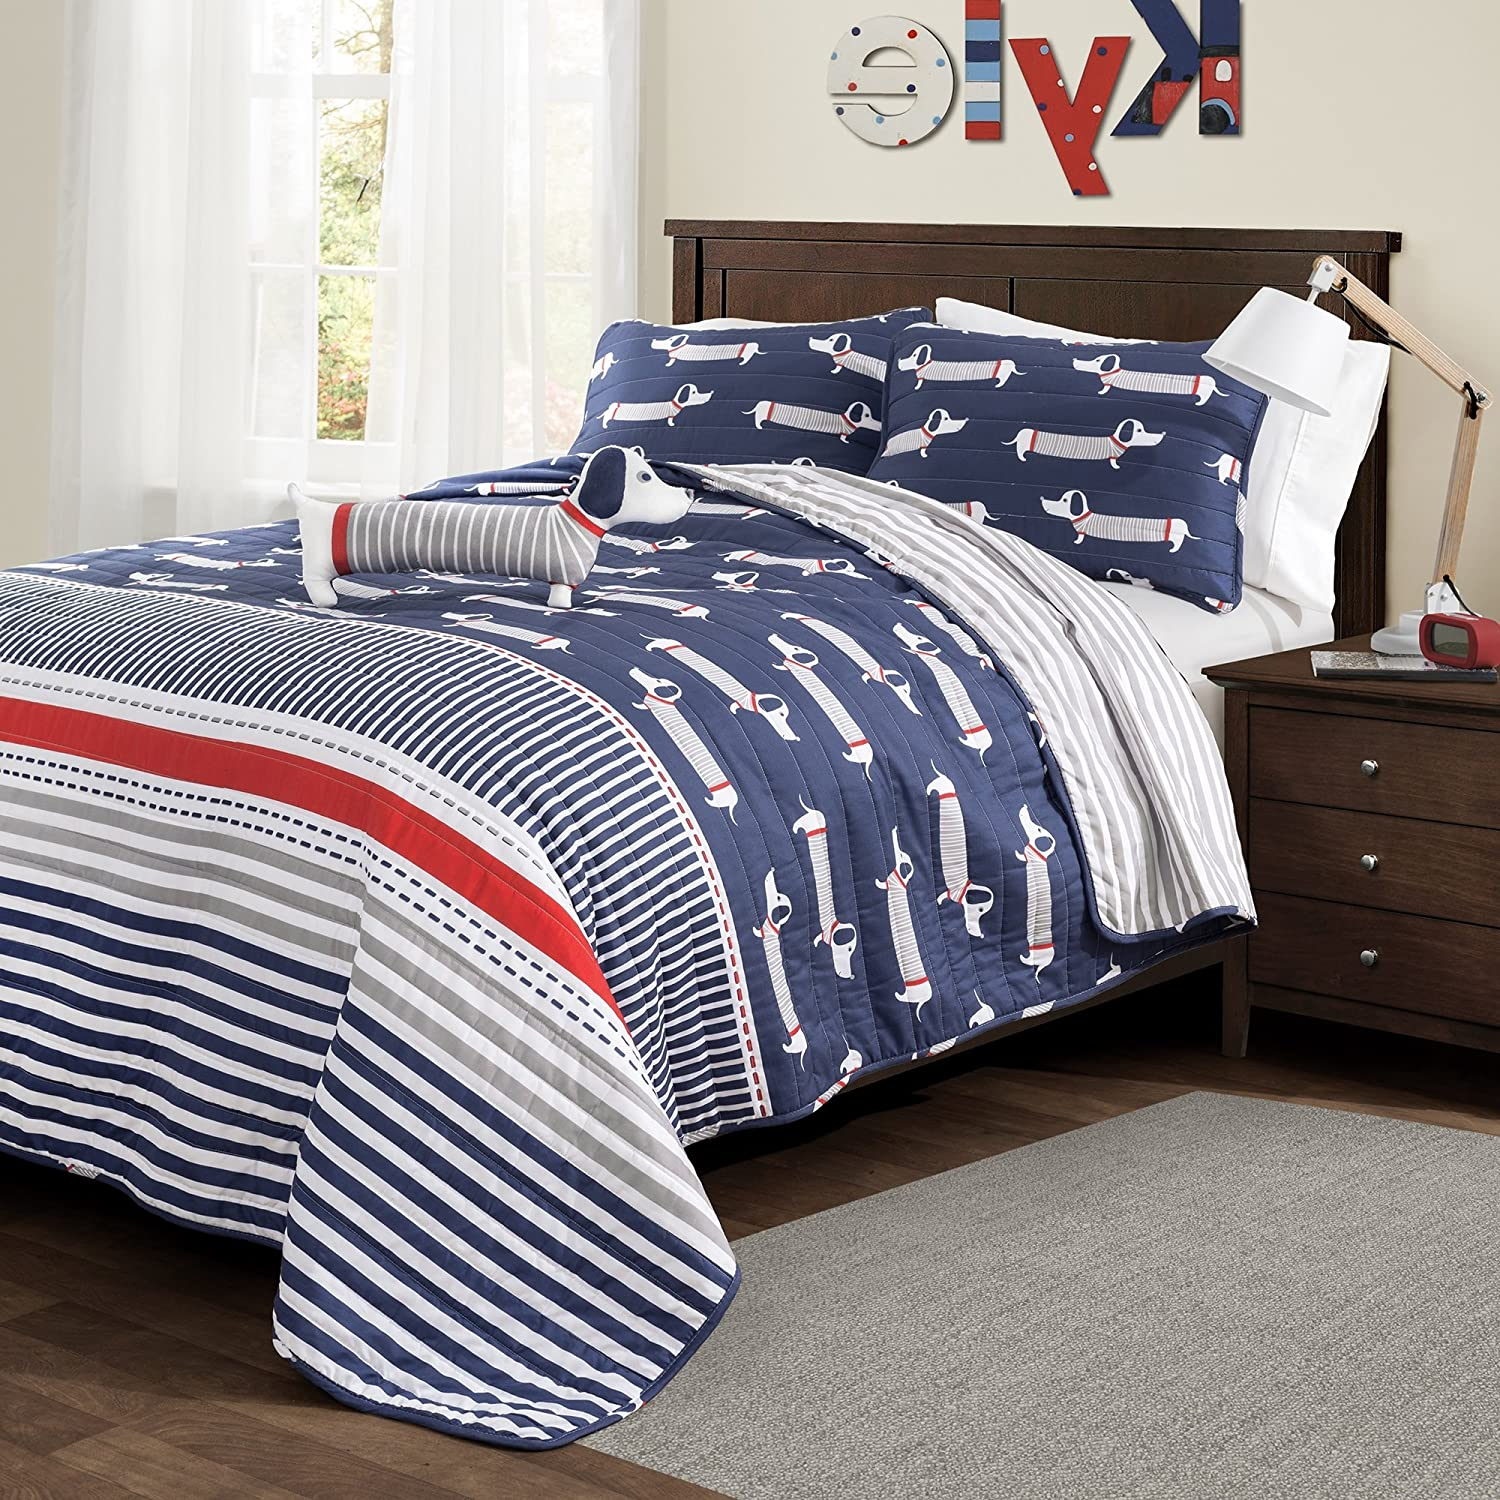 3 Piece Adorable Sausage Dogs Patterned Reversible Quilt Set Twin Size, Featuring Pastel Geometric Straight Line Stripes Bold Mans Best Friend Dog Bedding, Petlife Lovers Bedroom, Navy, White, Red S & E